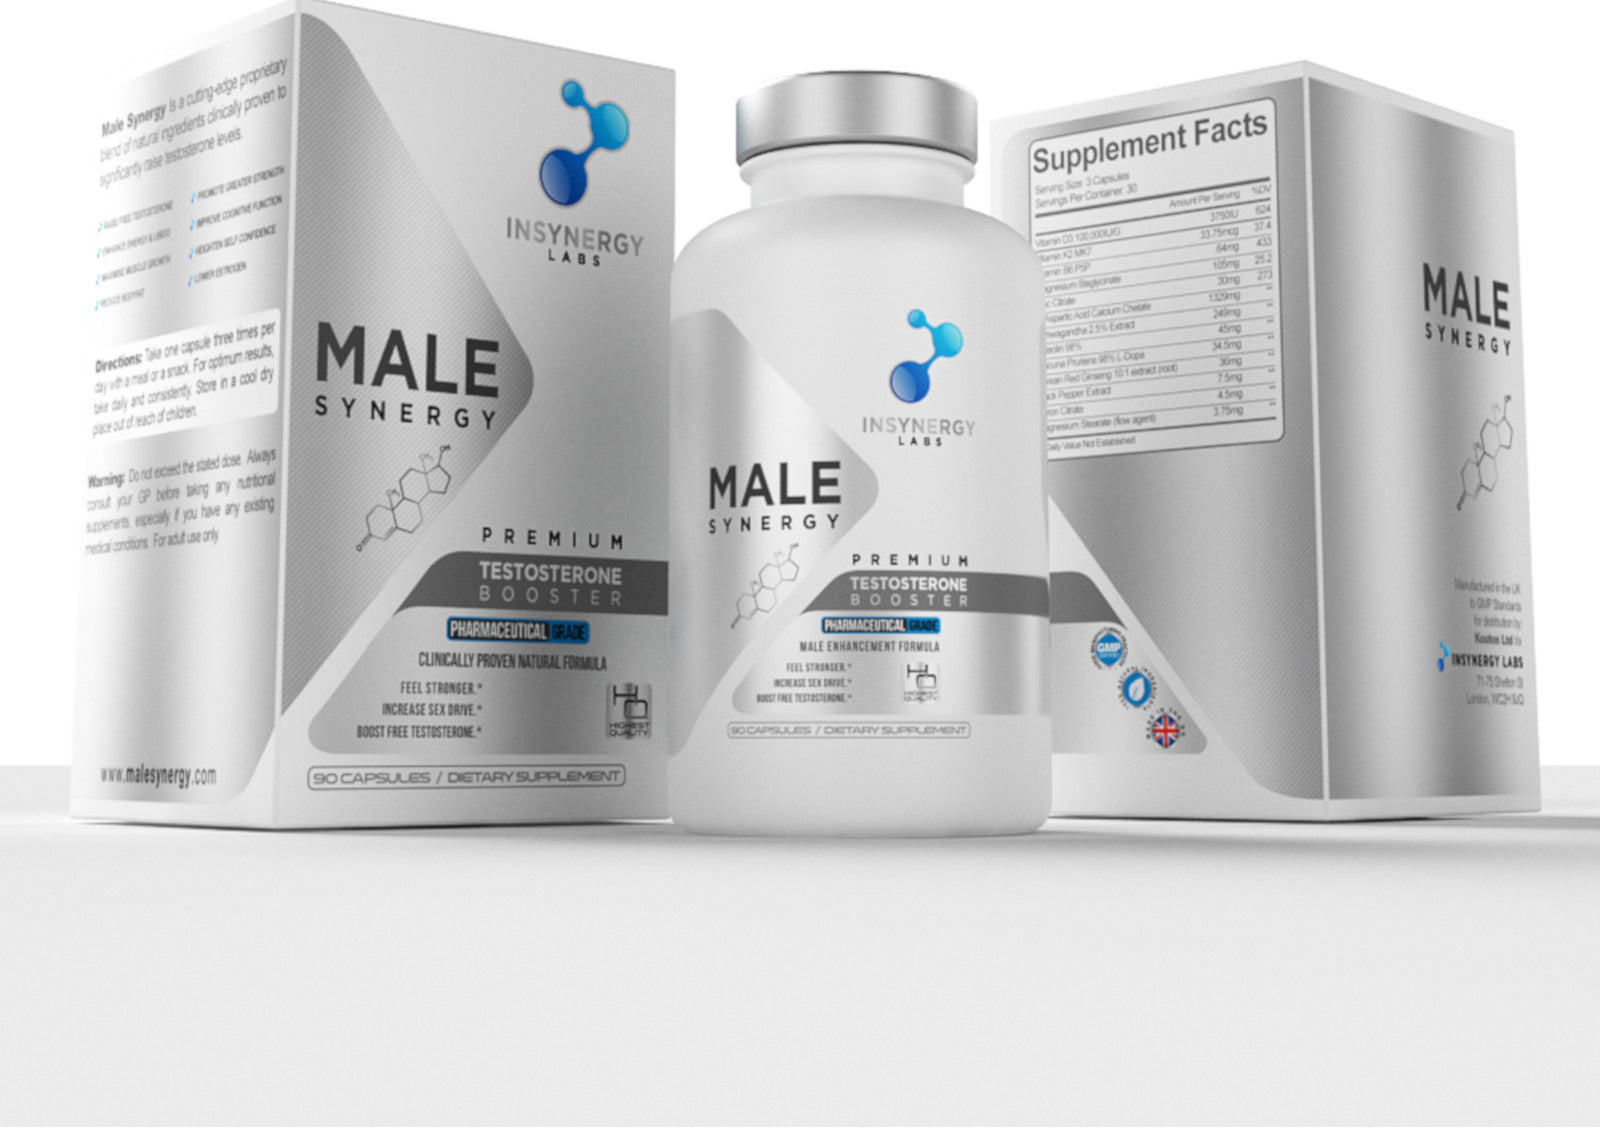 Male Synergy Subscription